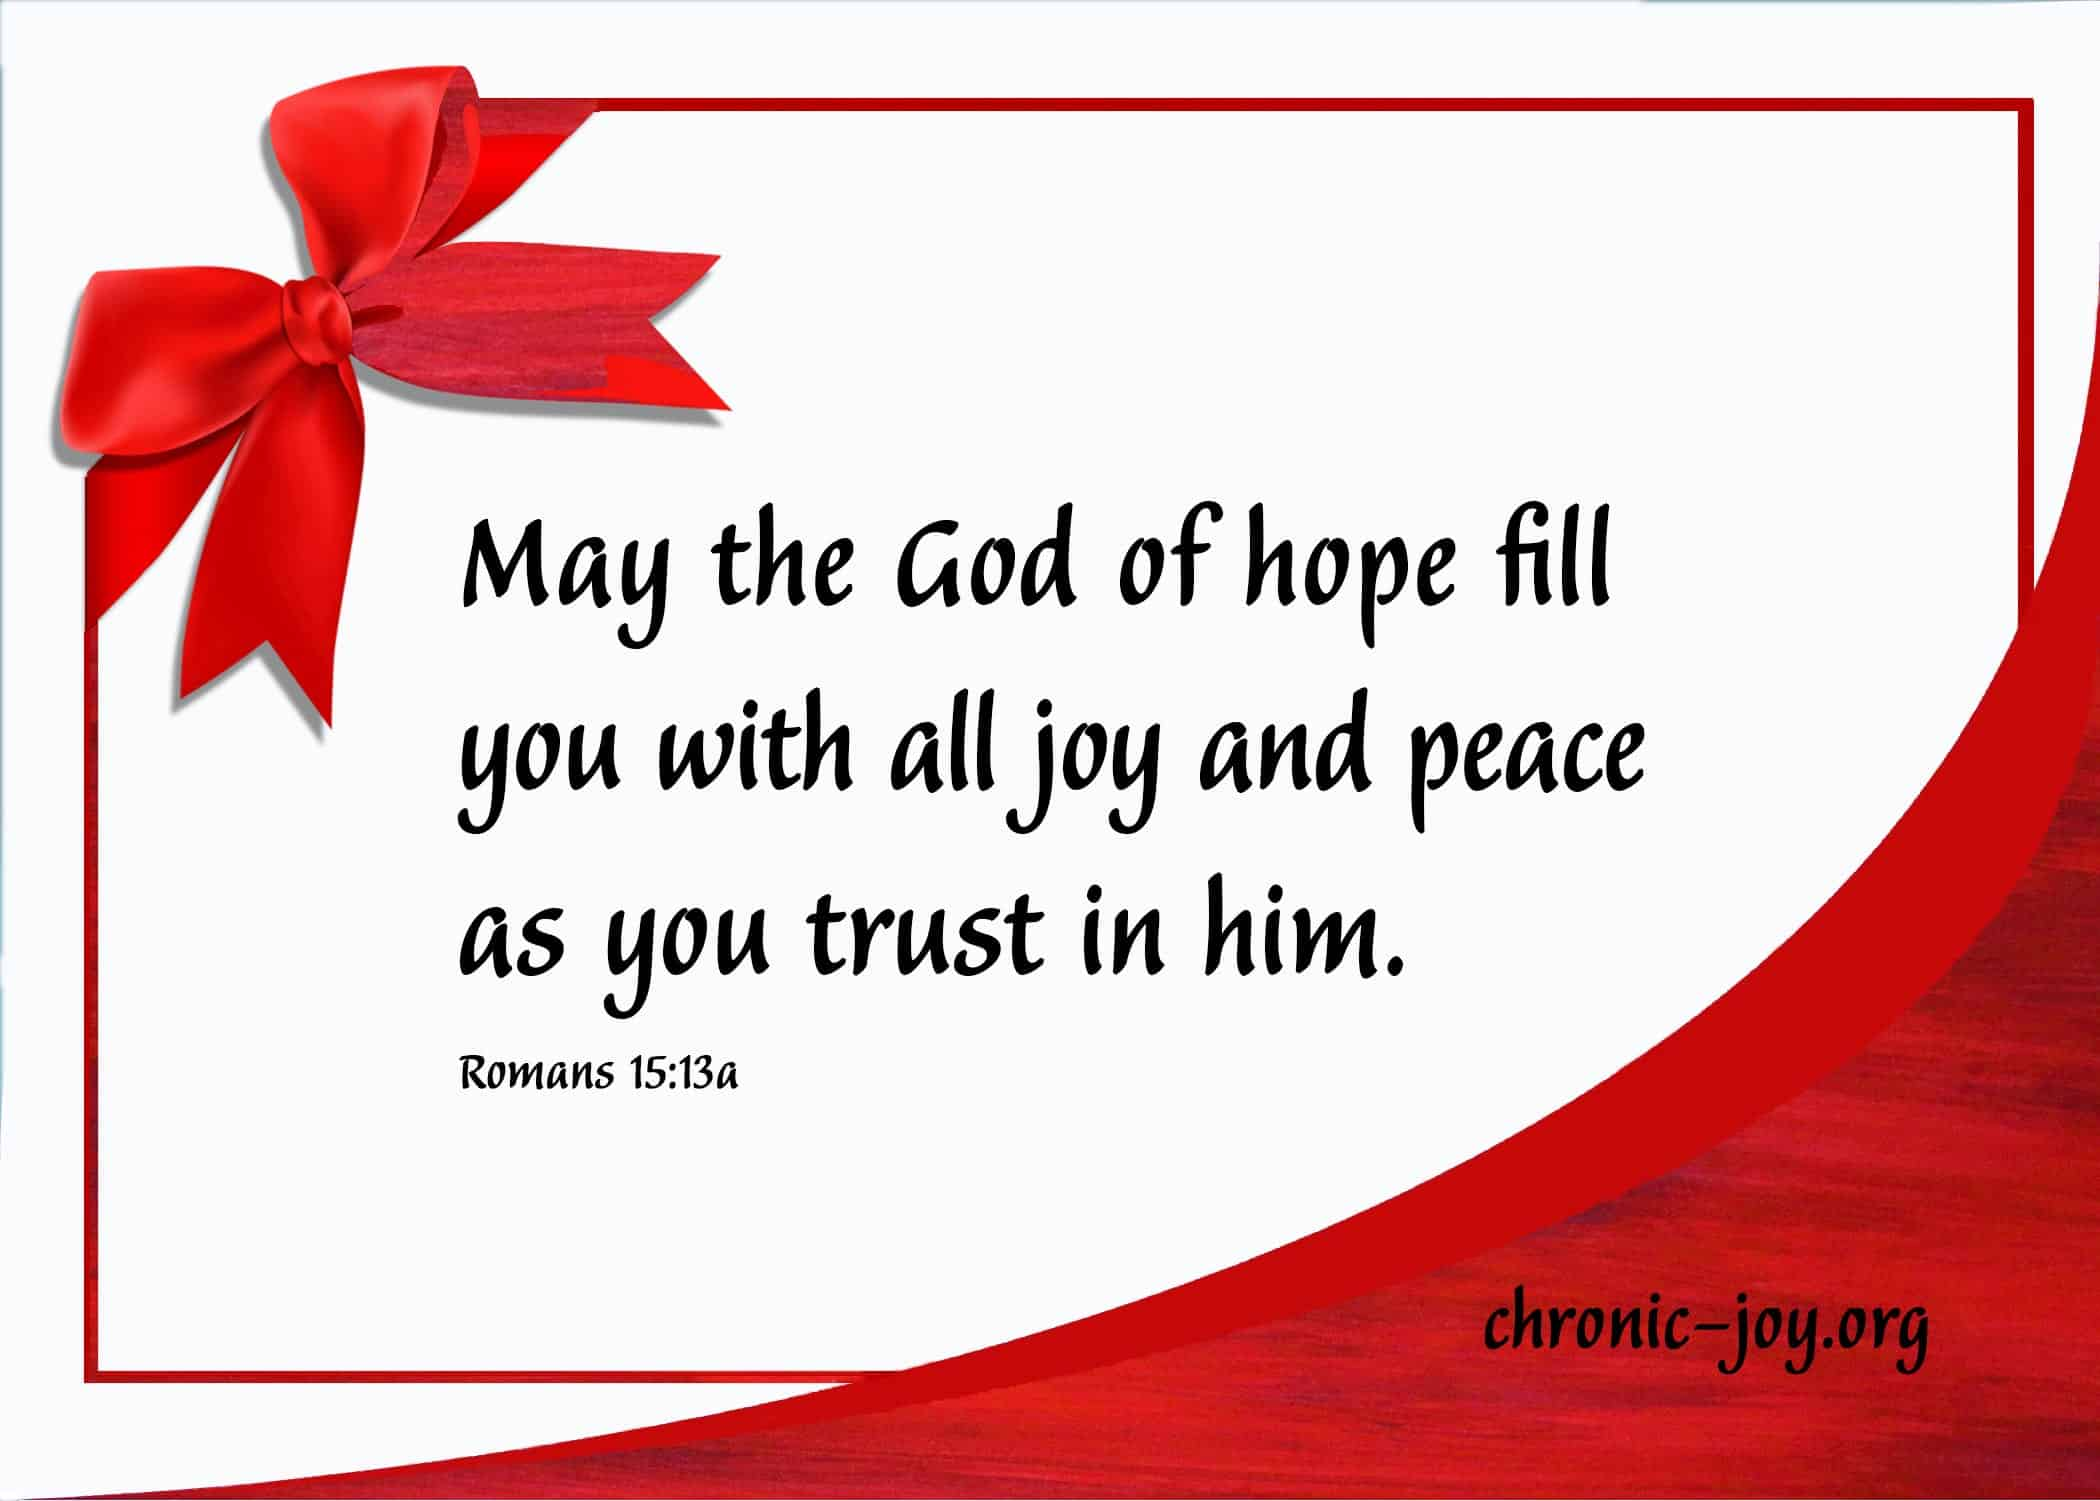 Hope, Joy, and Peace 🕊 | Merry Christmas | 🎁 Free Gift